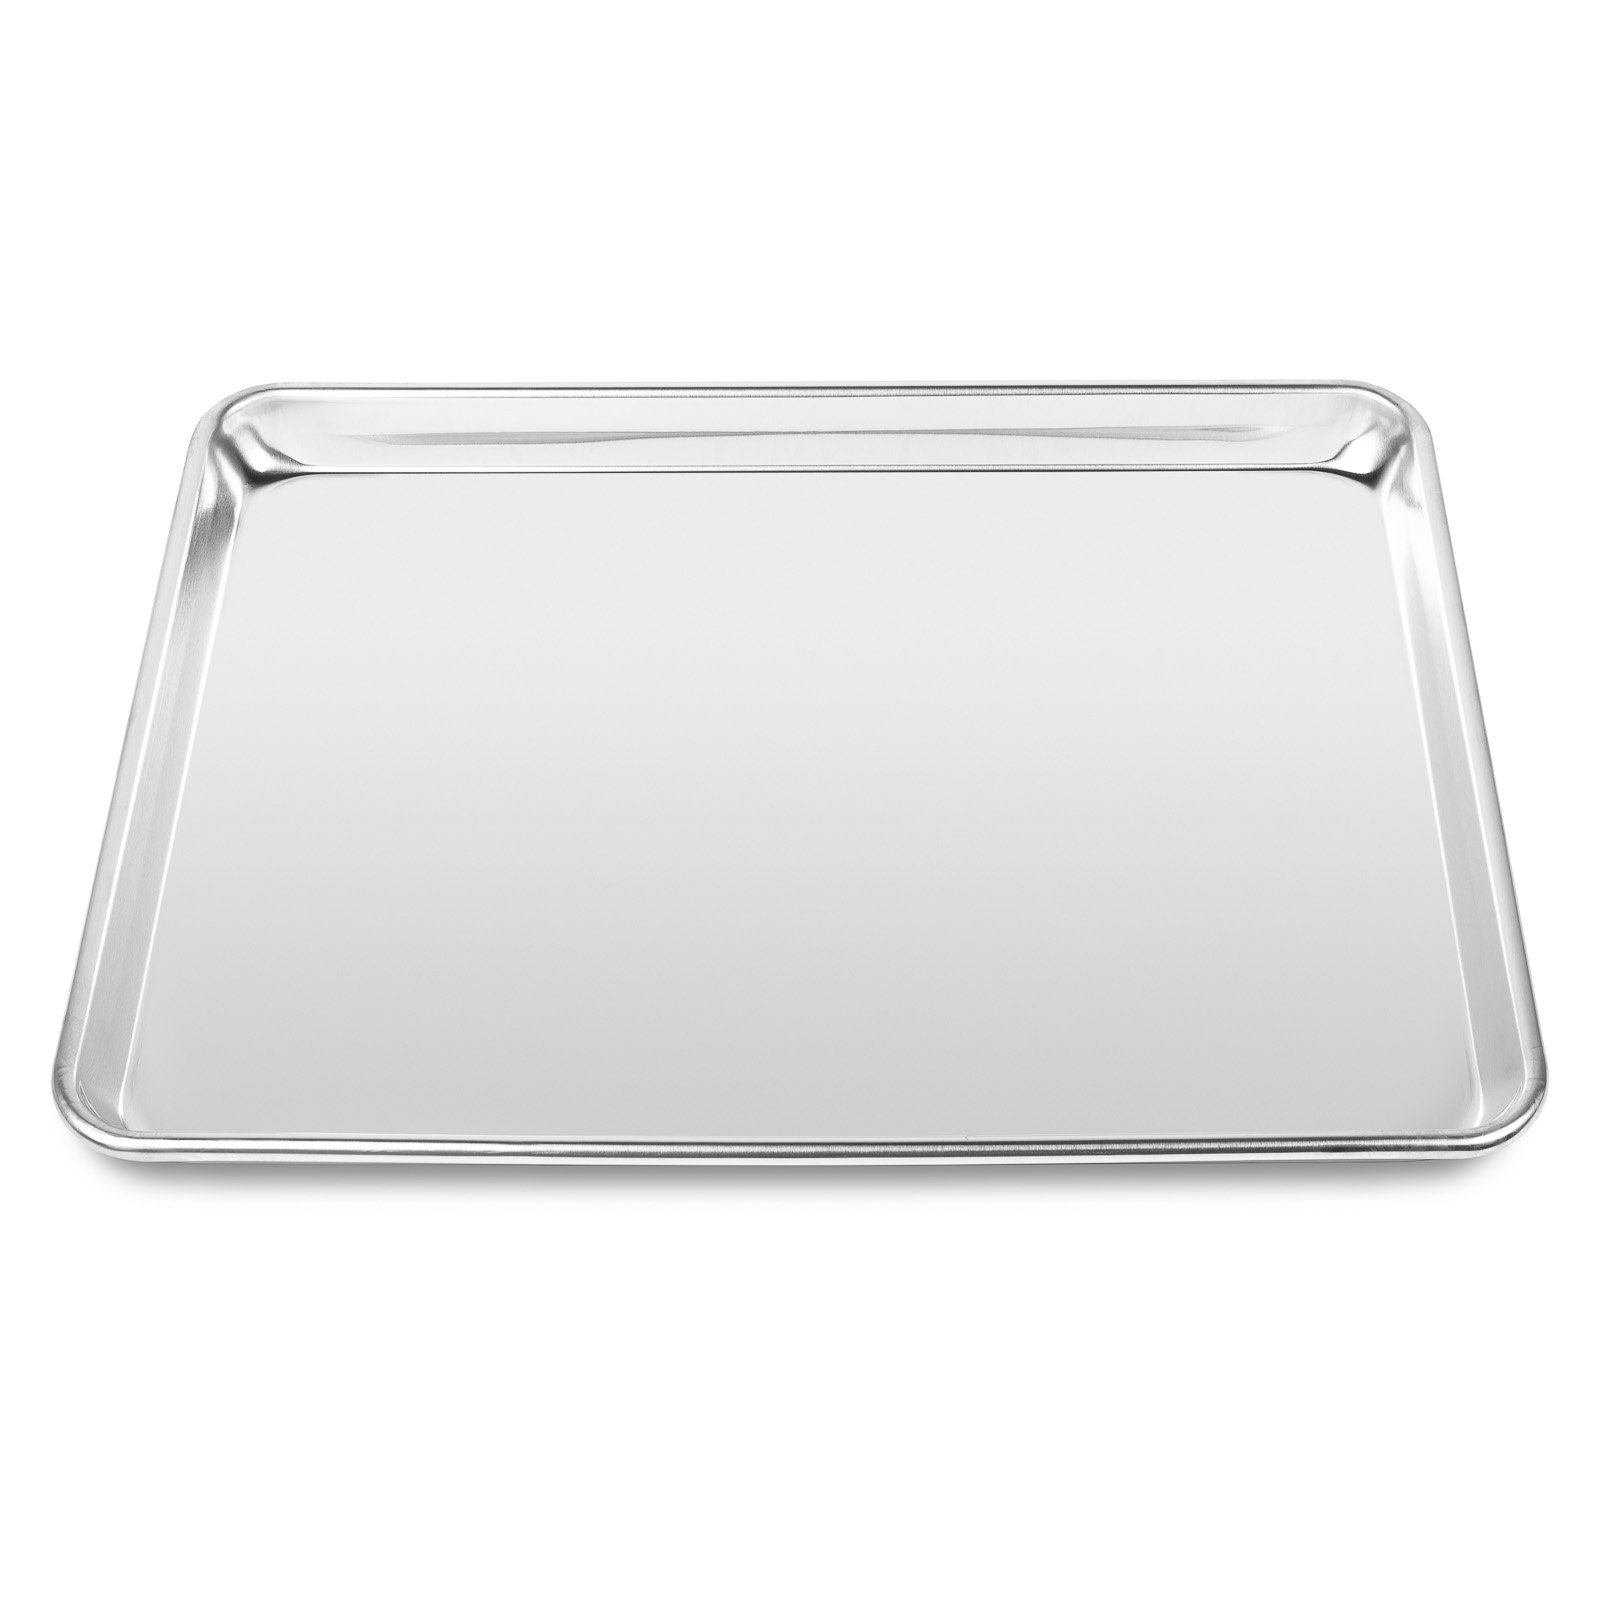 Last Confection 6 Cookie Baking Sheets 13'' x 18'' - Rimmed Aluminum Jelly Roll Trays - Half Sheet Pans by Last Confection (Image #3)